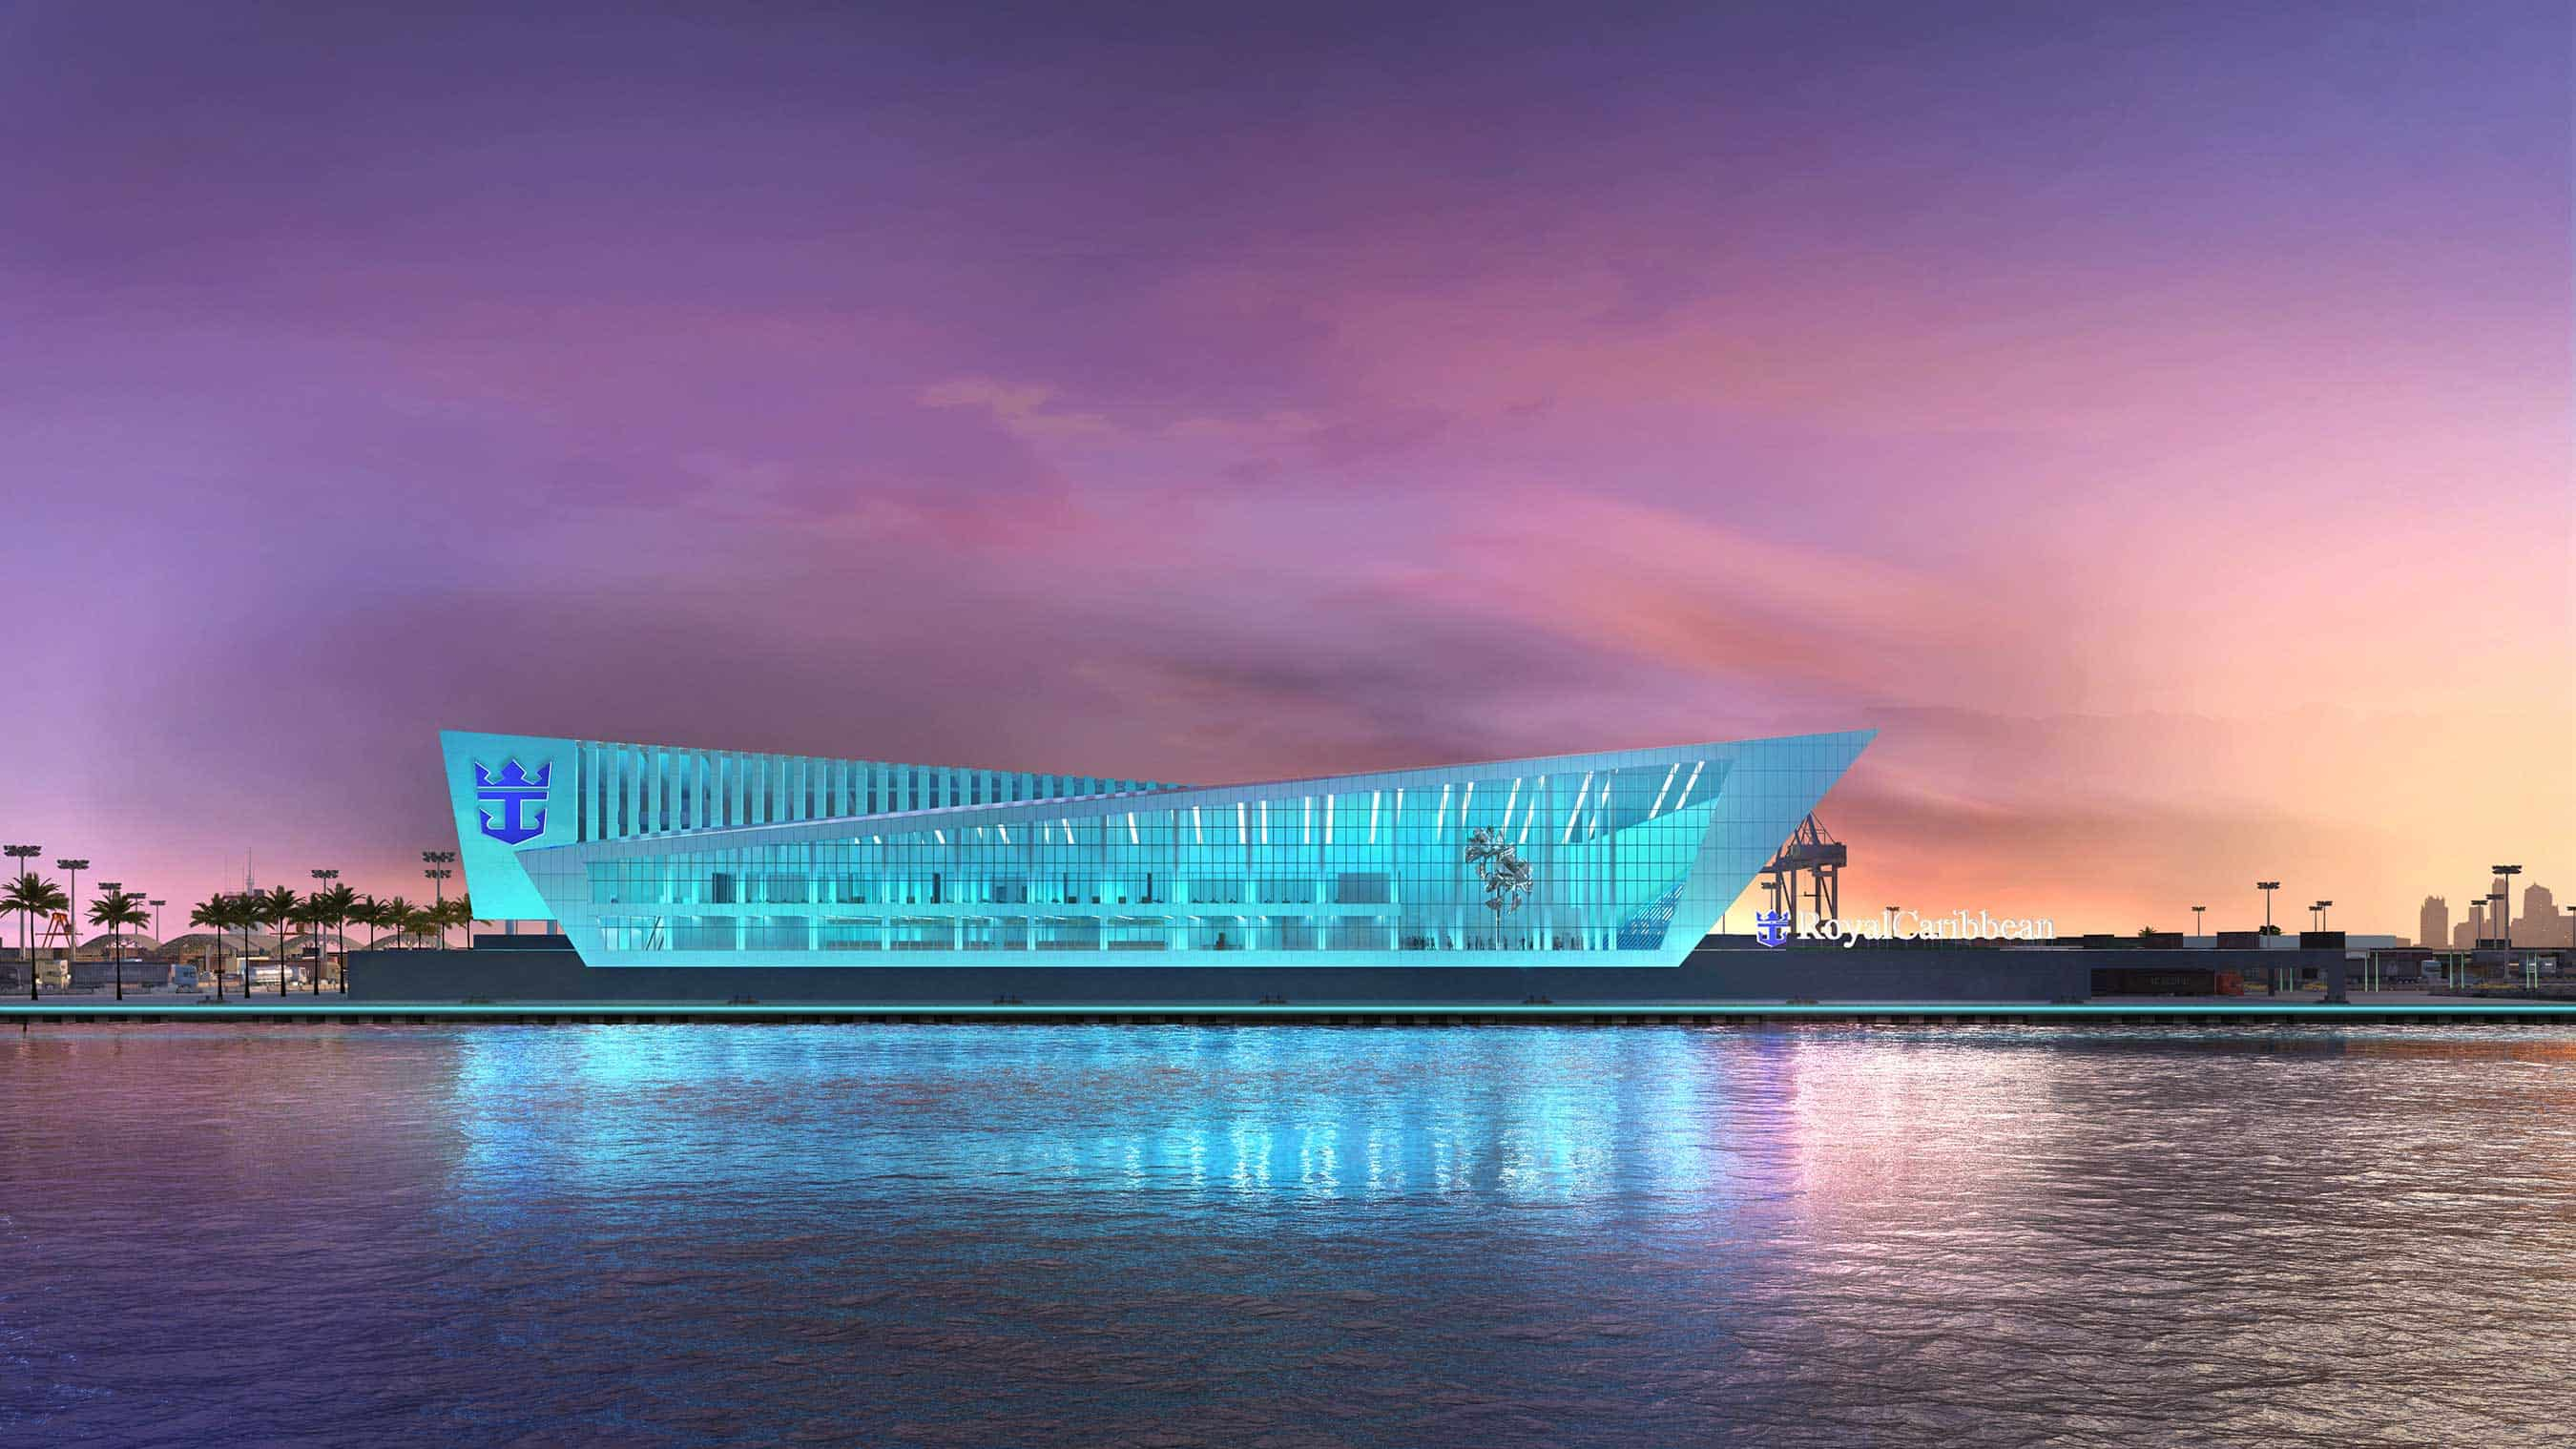 new-iconic-cruise-terminal-4-HR